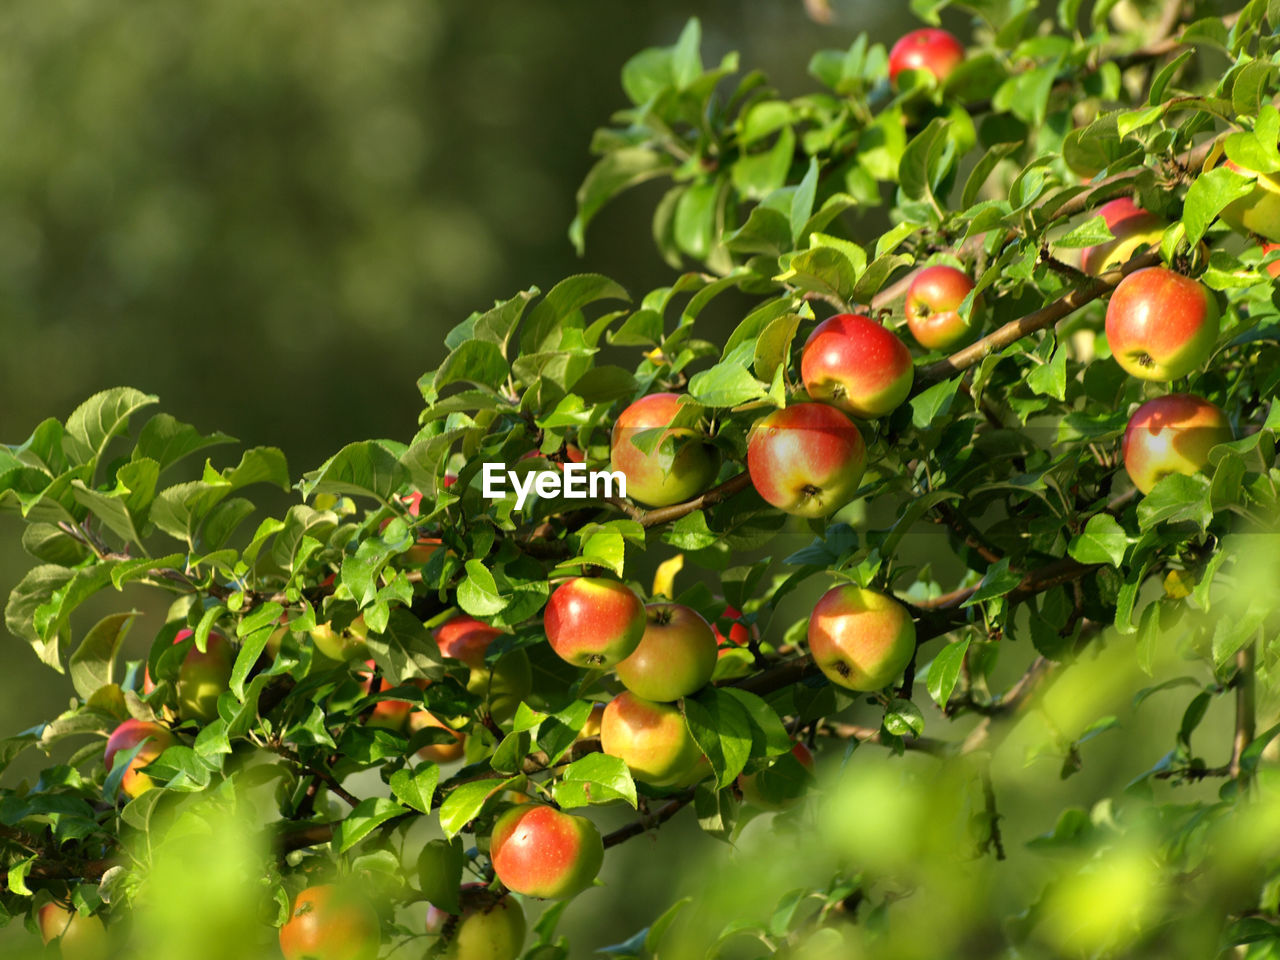 fruit, healthy eating, food and drink, food, freshness, growth, wellbeing, plant, green color, nature, leaf, red, plant part, day, close-up, tree, selective focus, no people, beauty in nature, outdoors, ripe, rowanberry